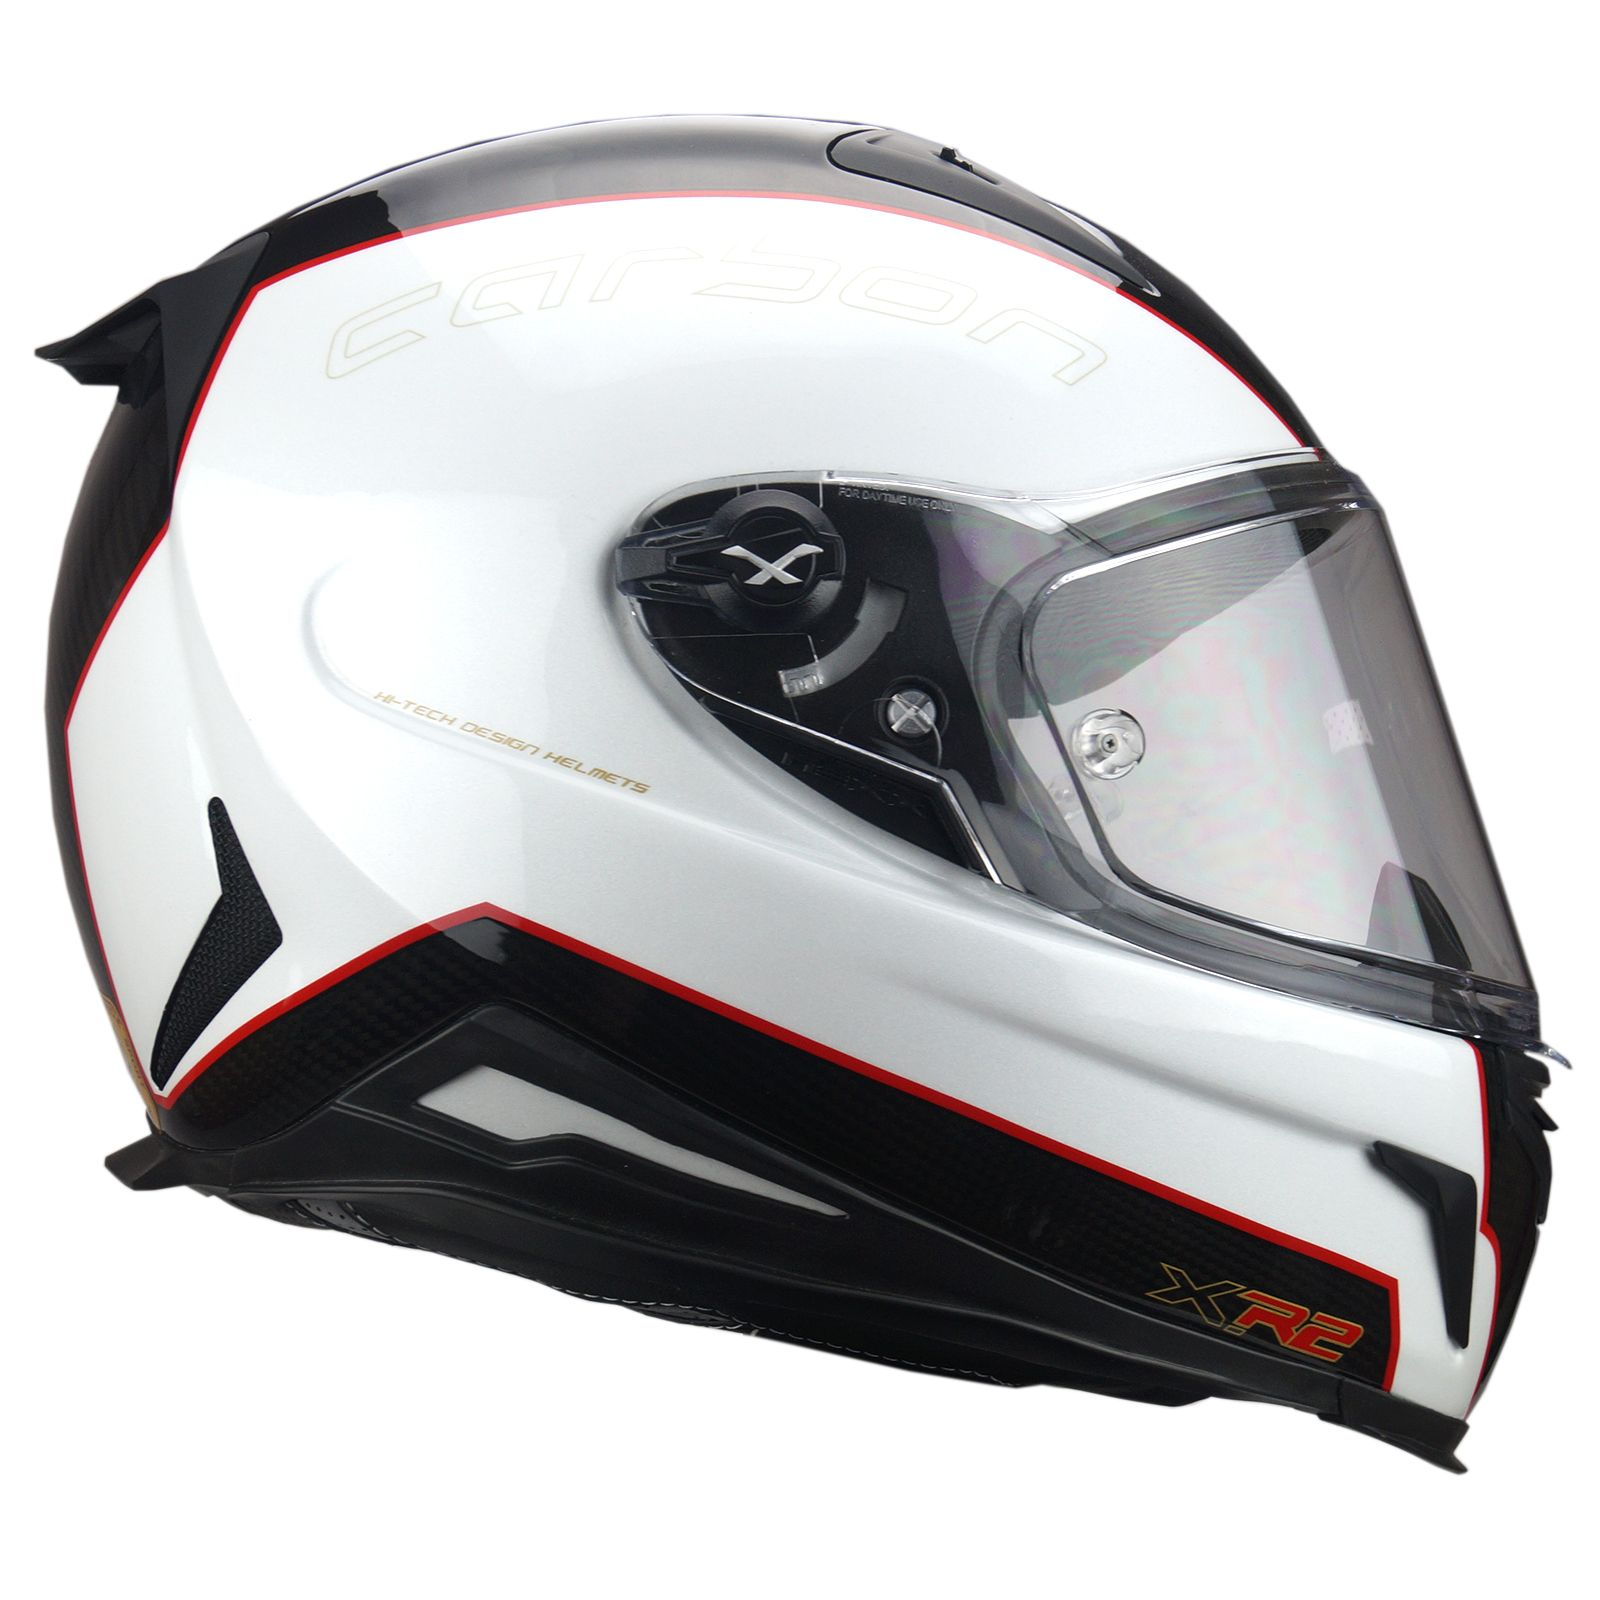 3582f3ce89c36 Details about NEXX XR2 X.R2 Full Face Carbon Motorcycle Racing Helmet Fuel  carbon White